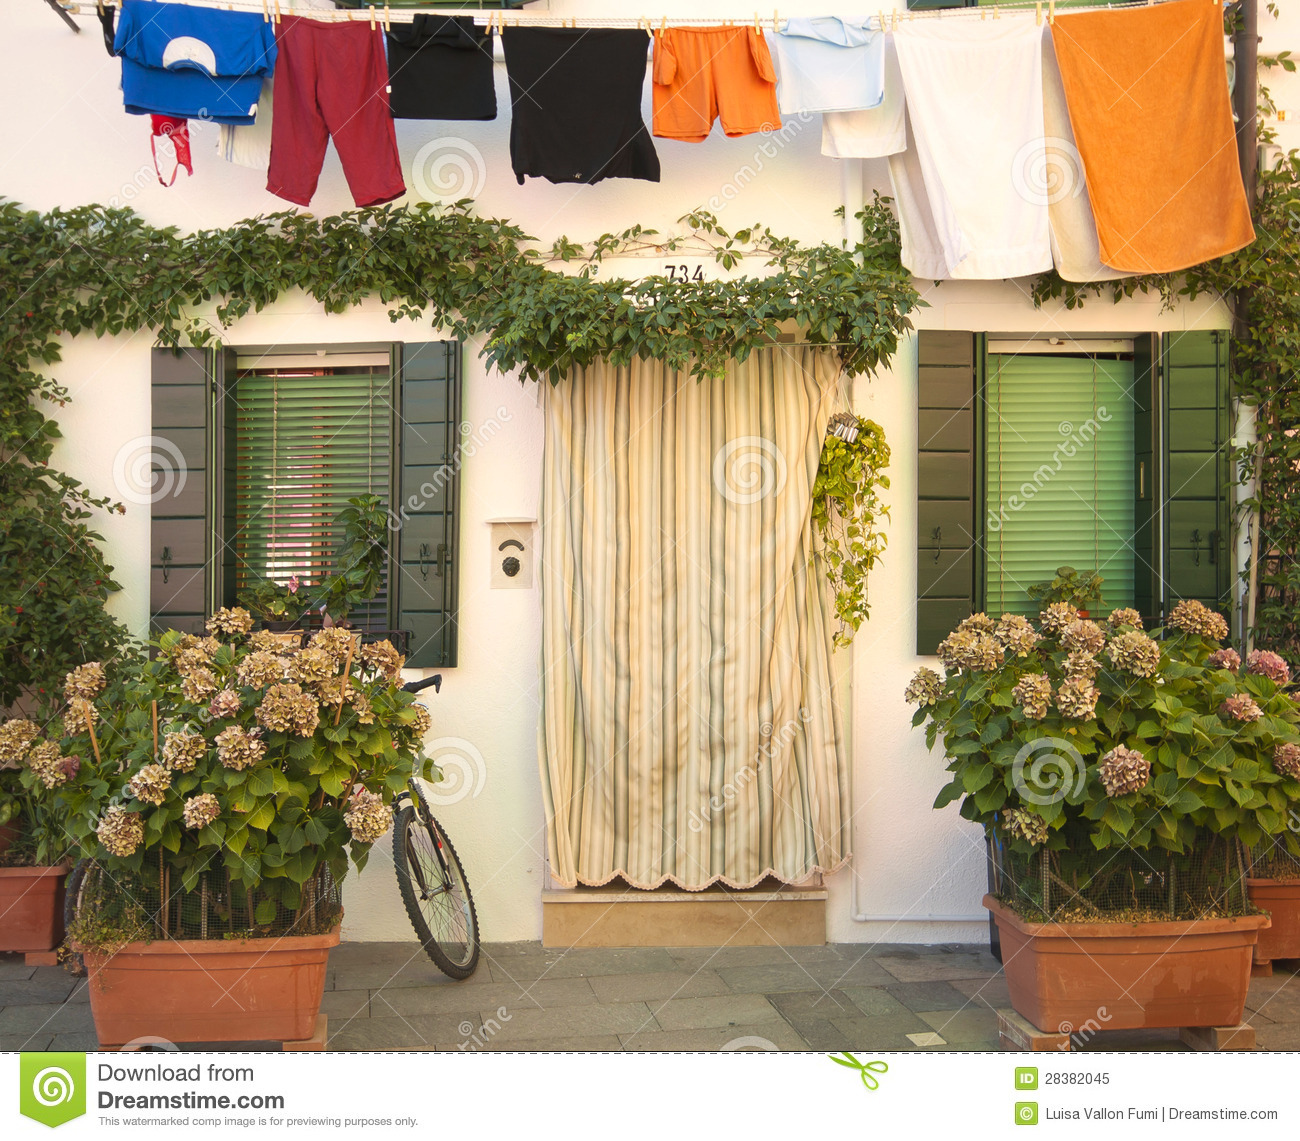 italy, burano: house with flowers and laundry hanging royalty free